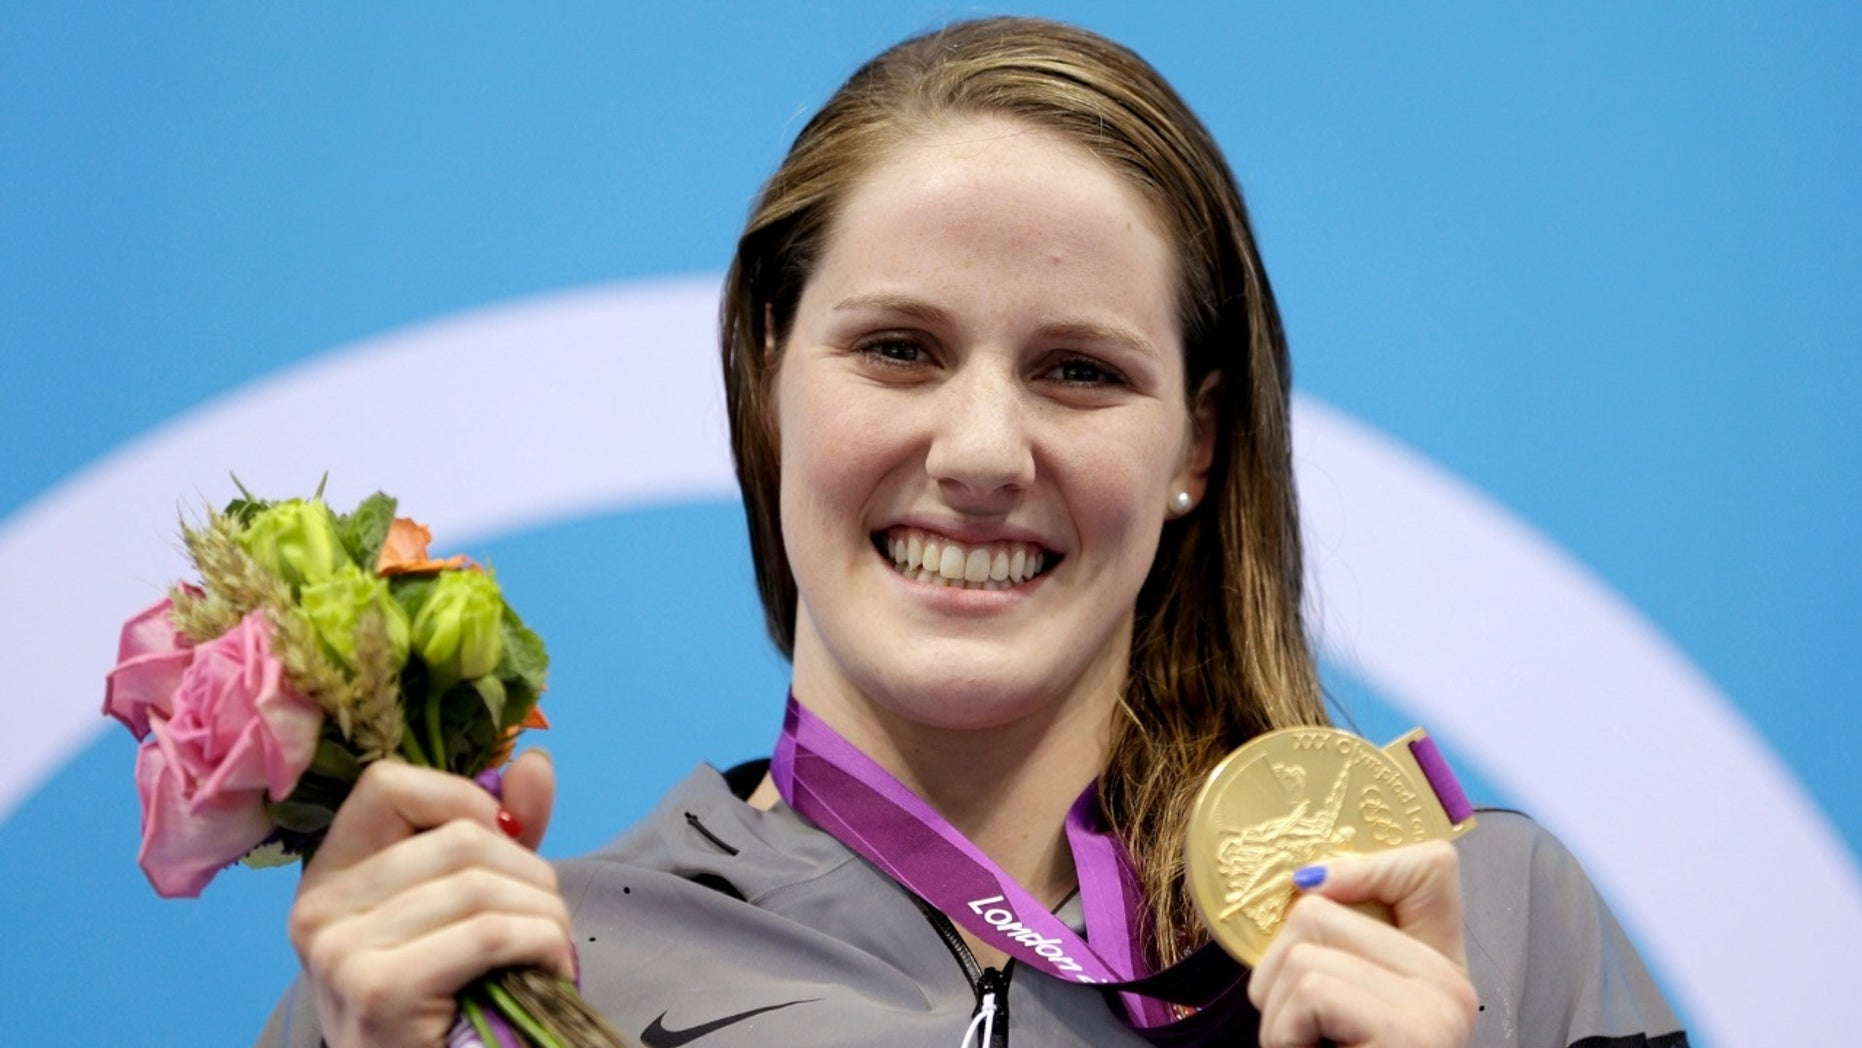 Five-time Olympic champion Missy Franklin announced she is retiring from swimming.